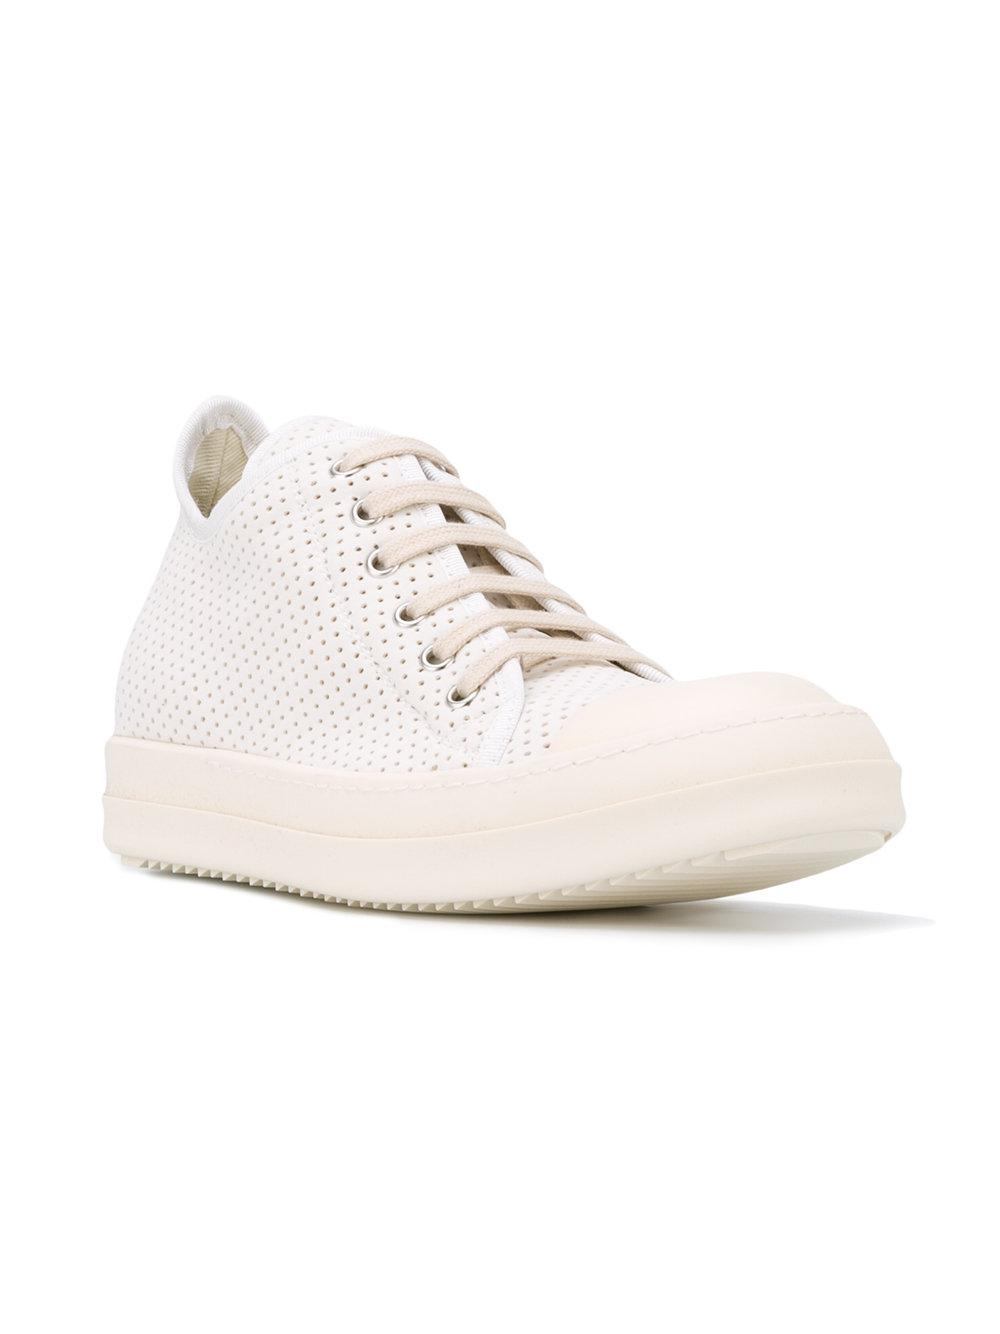 Really Official For Sale Rick Owens Perforated sneakers Discount Recommend QWTXe8